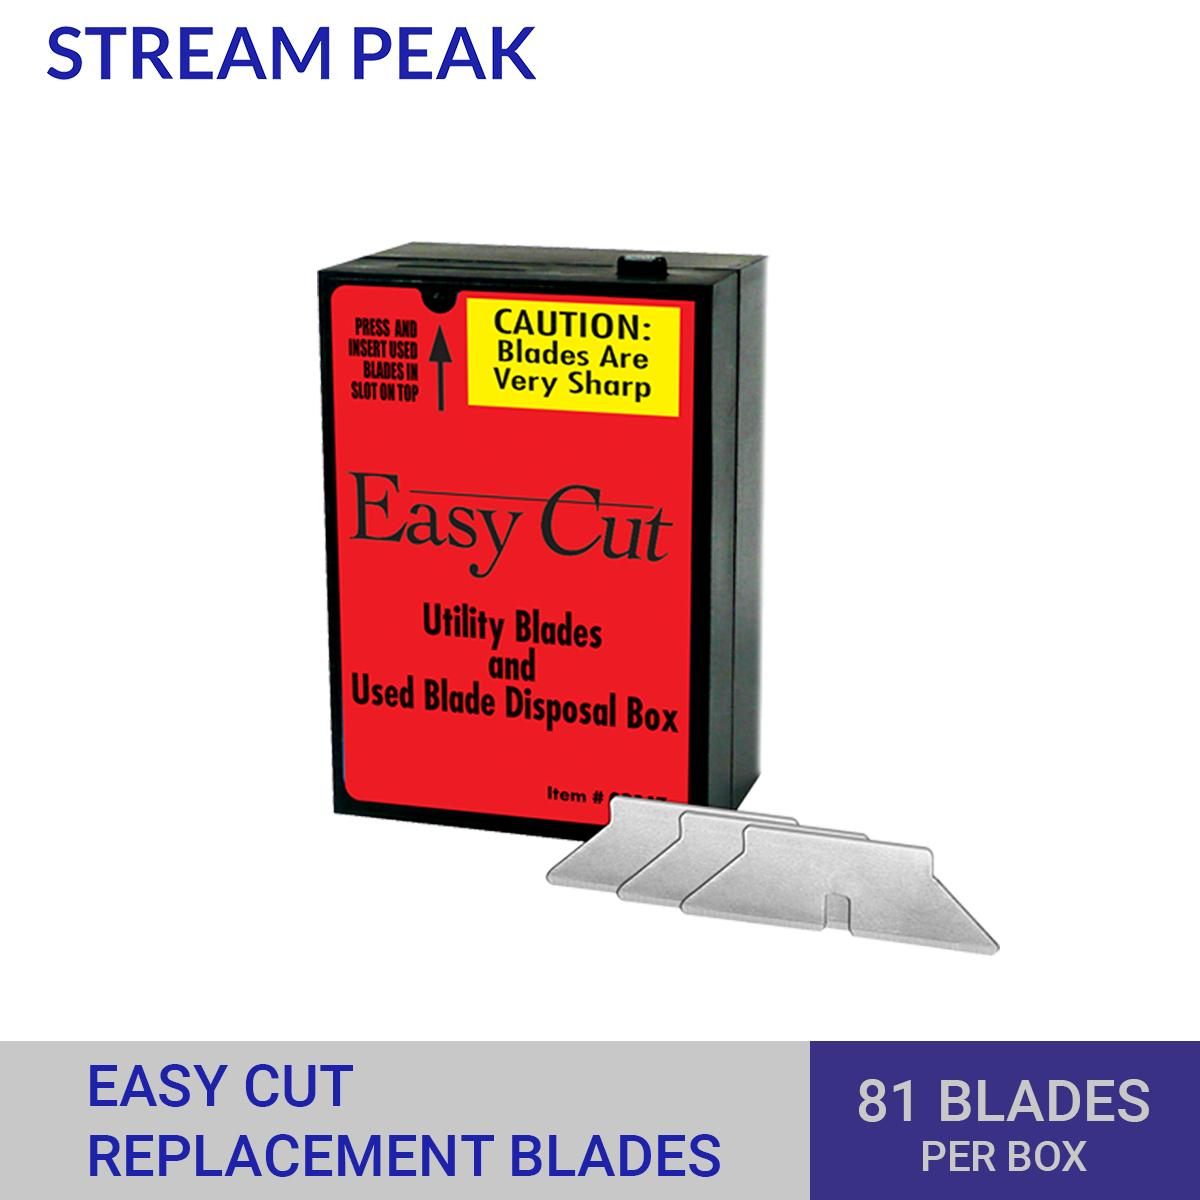 Easy Cut Safety Cutter Standard Replacement Blade, 81 Blades Inside Dispenser [ For Easy Cut 2000 & 4000, Durable, Long-Lasting ] Stream Peak